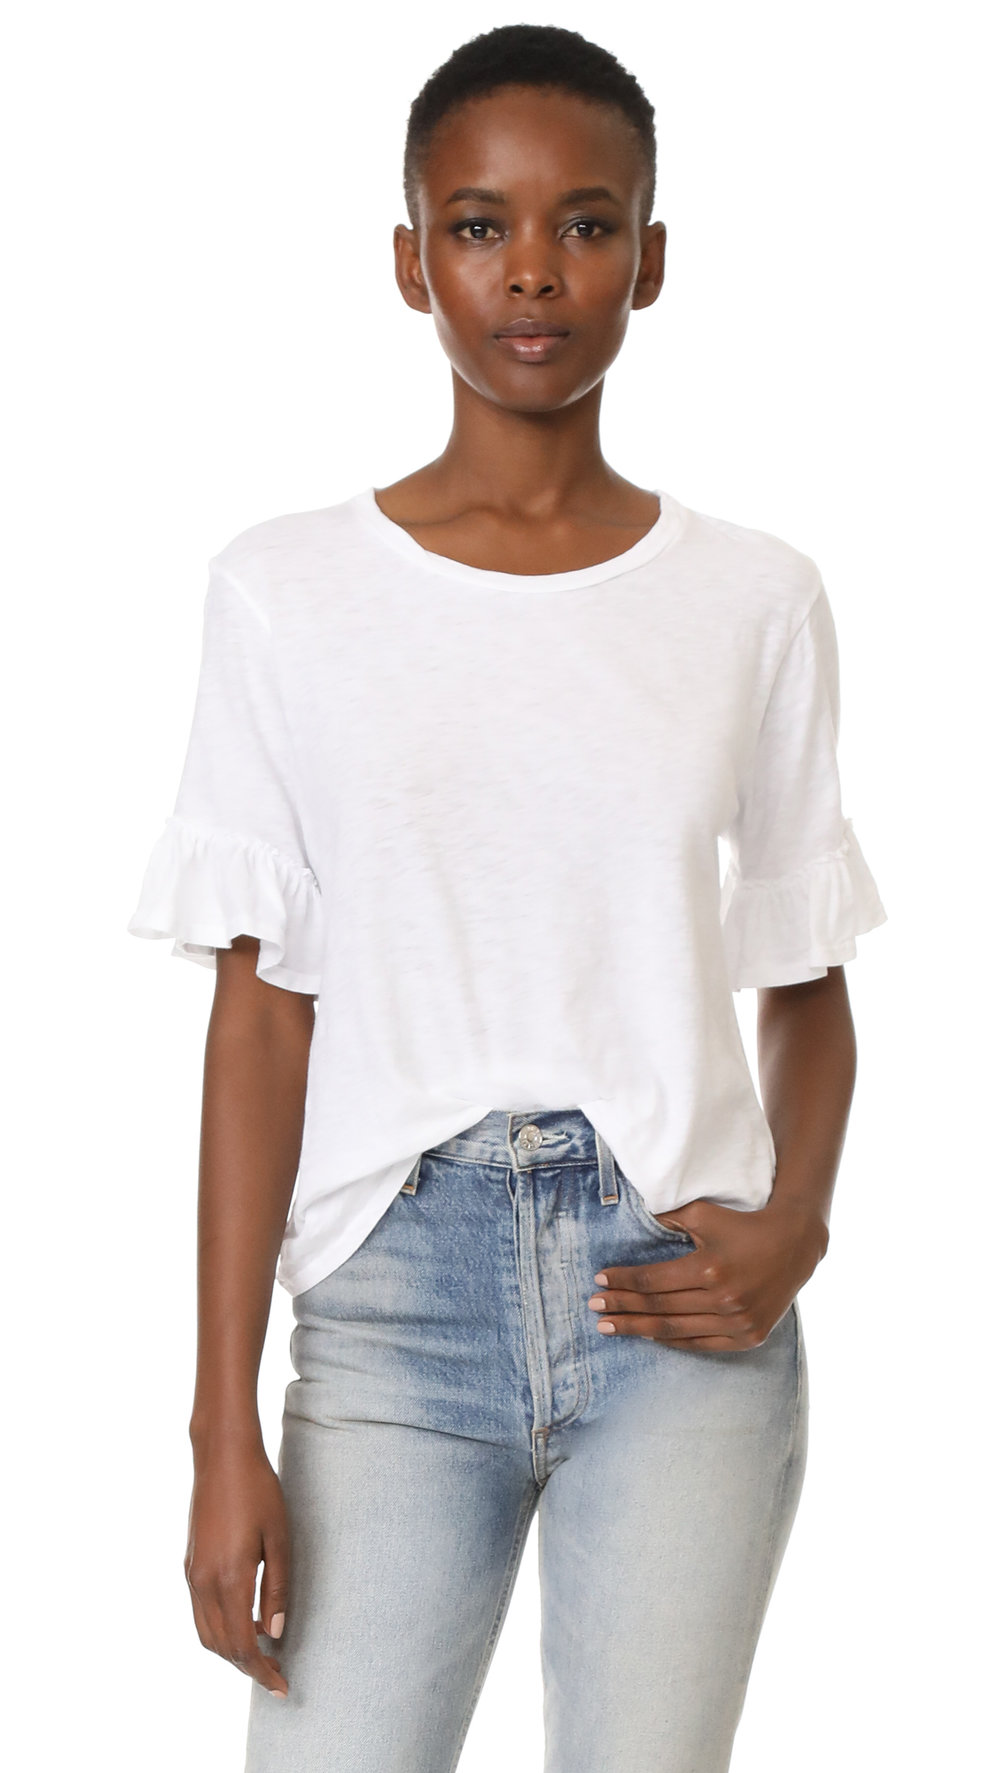 IF YOU GUYS FOLLOW YOU KNOW i LOVE WHITE TEES, IT'S MY EVERYDAY GO-TO SO HERE IS A SUPER CUTE OPTION WITH FLARES ON THE SLEEVES.